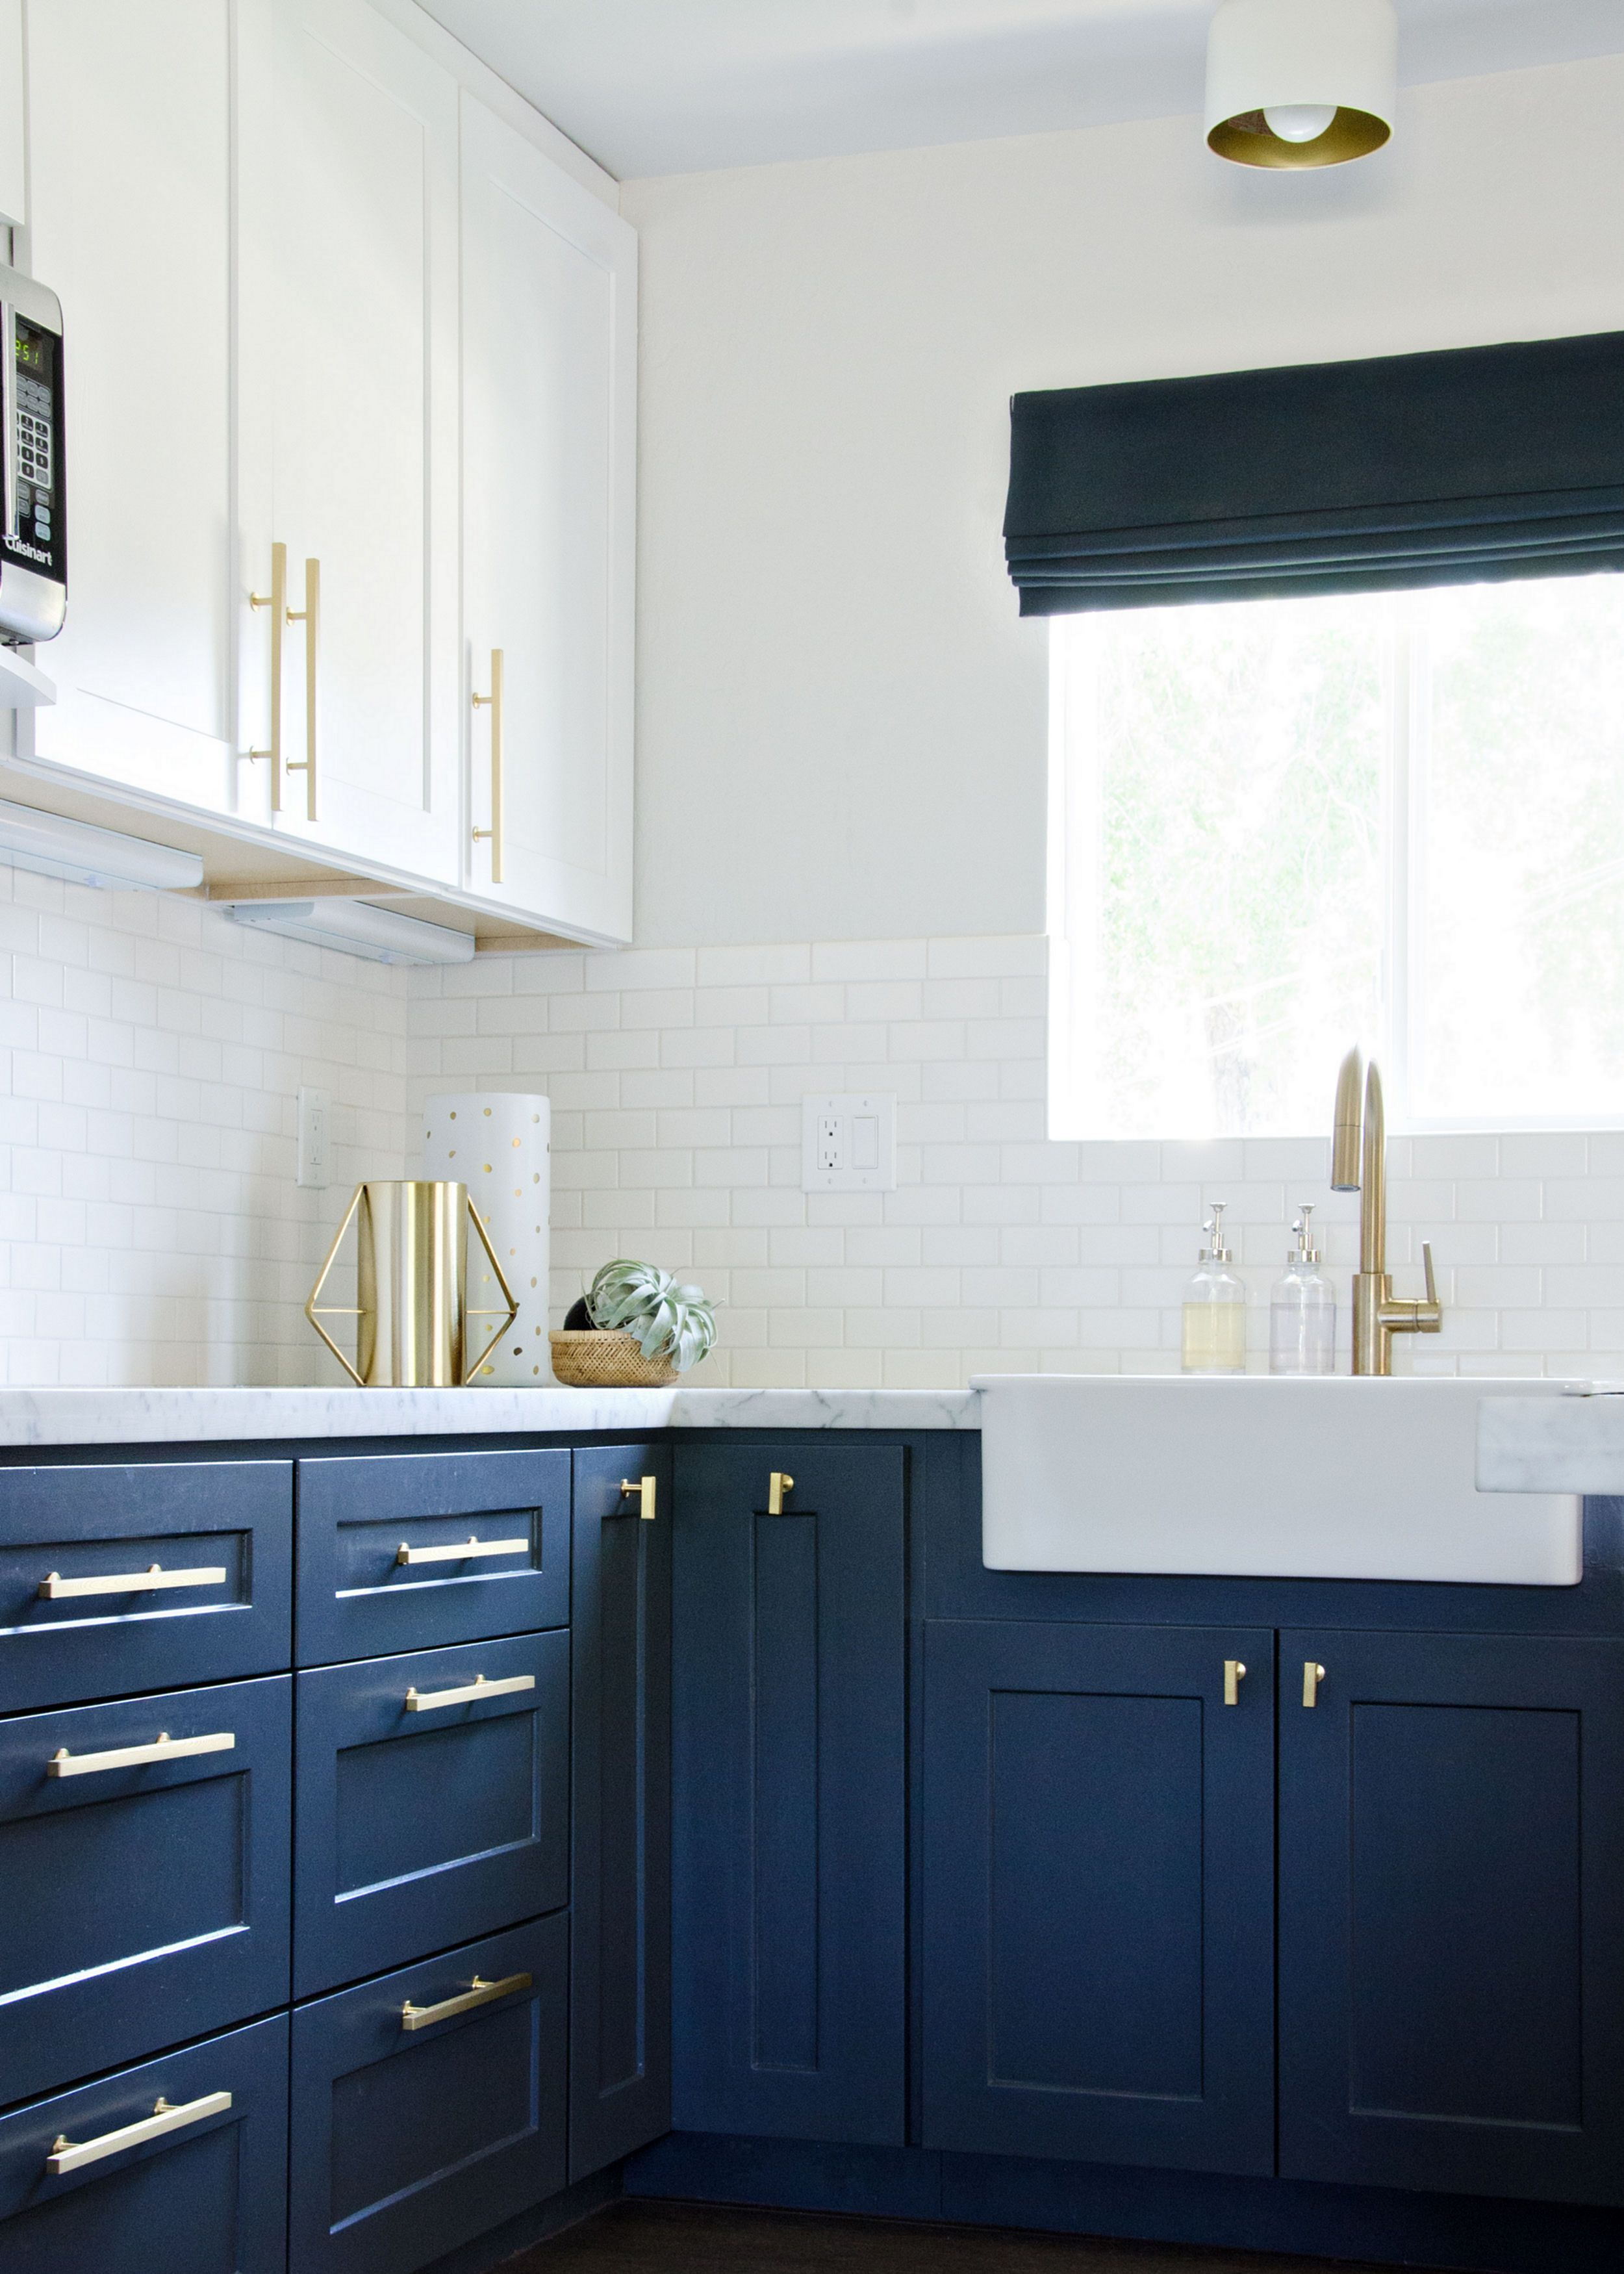 Wicked 55 most antique gold kitchen hardware ideas to make your kitchen more unique